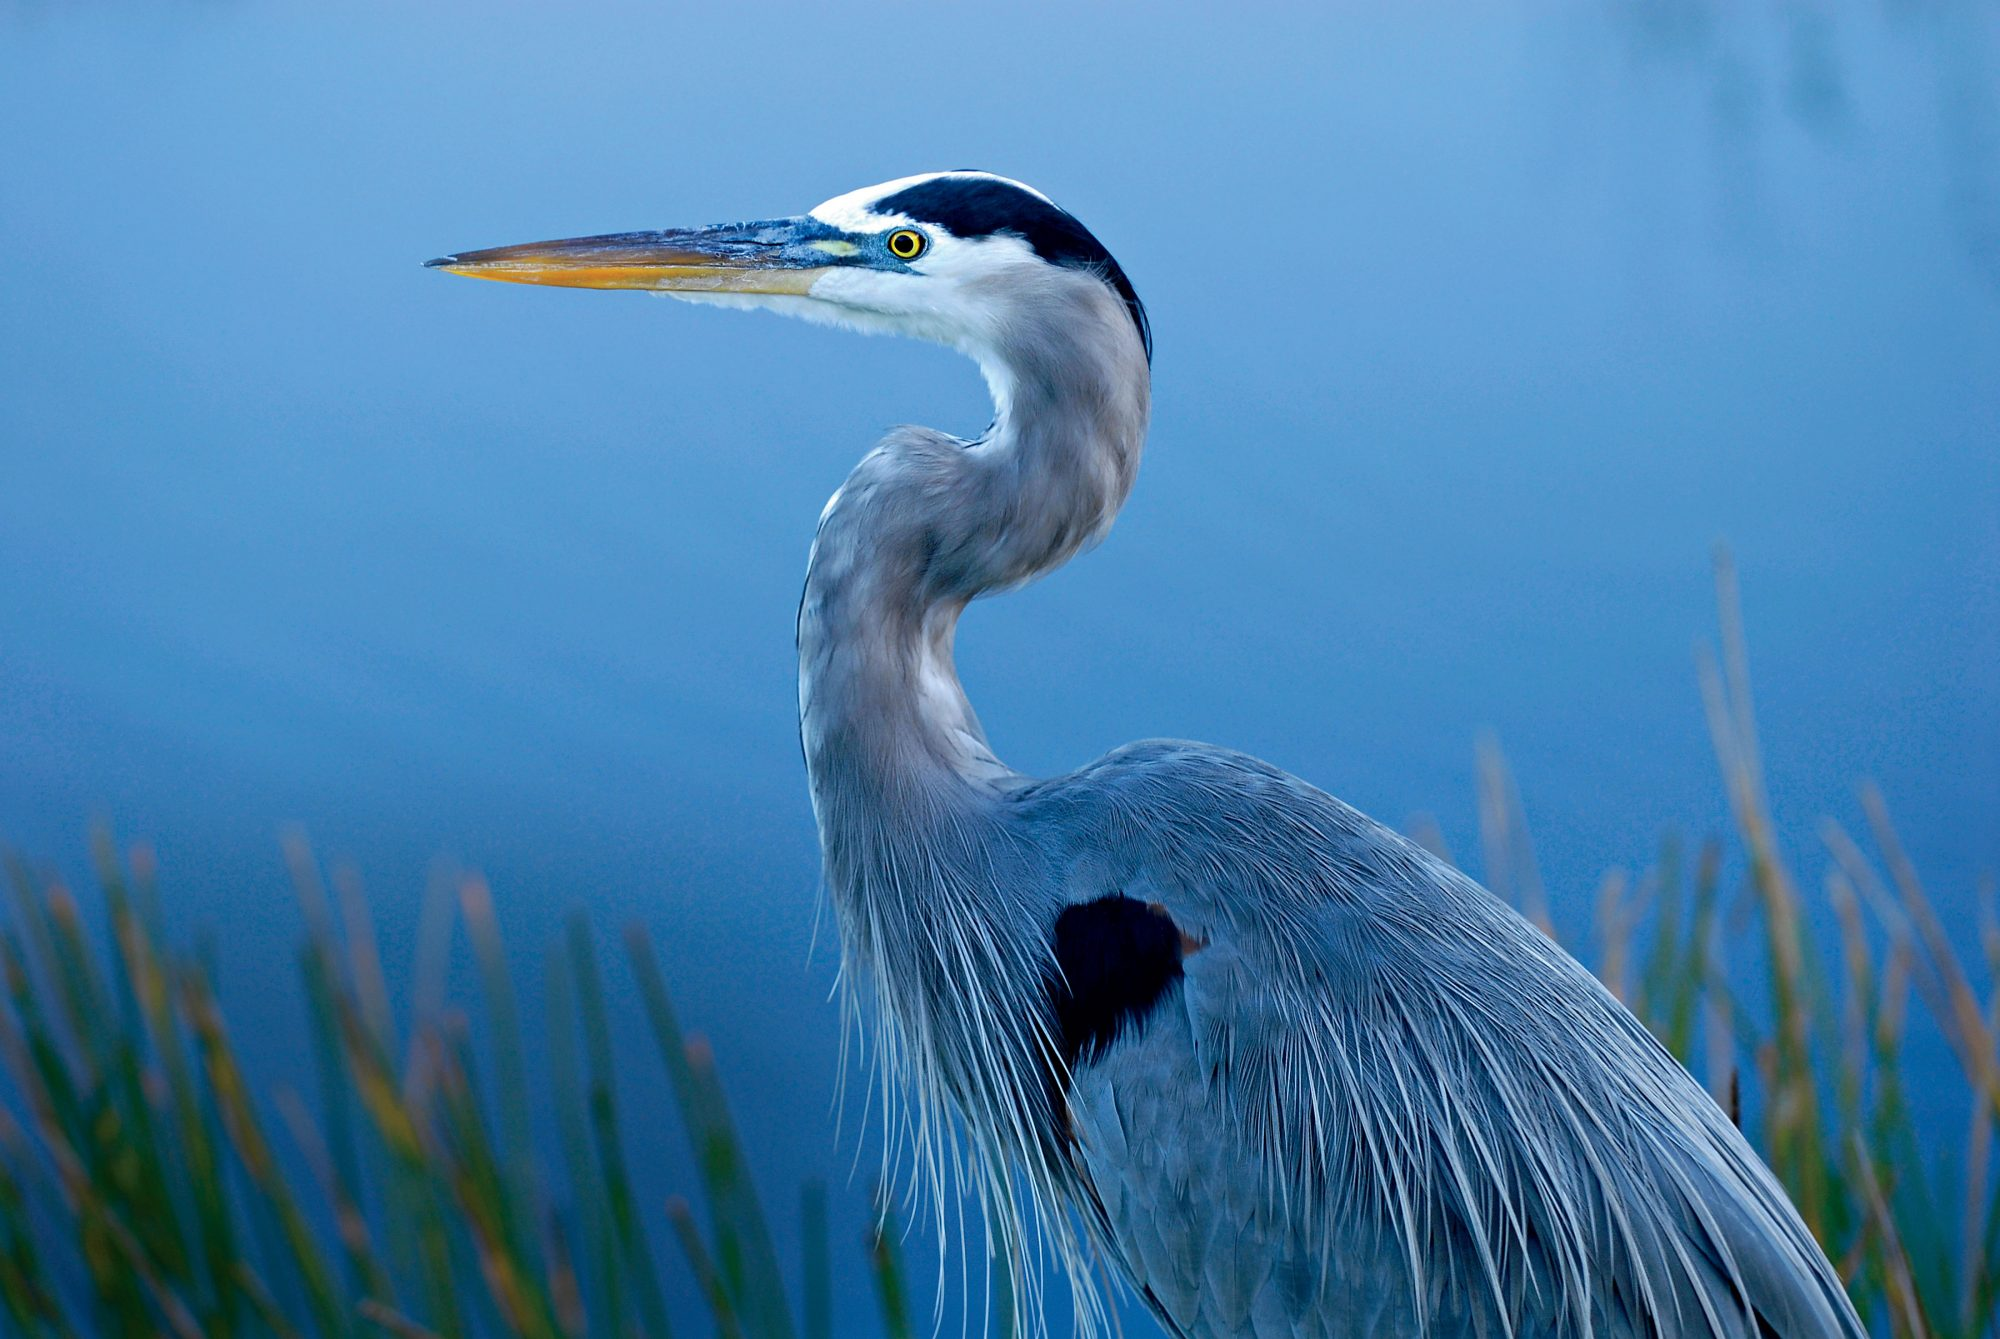 Great Blue Heron in Everglads National Park